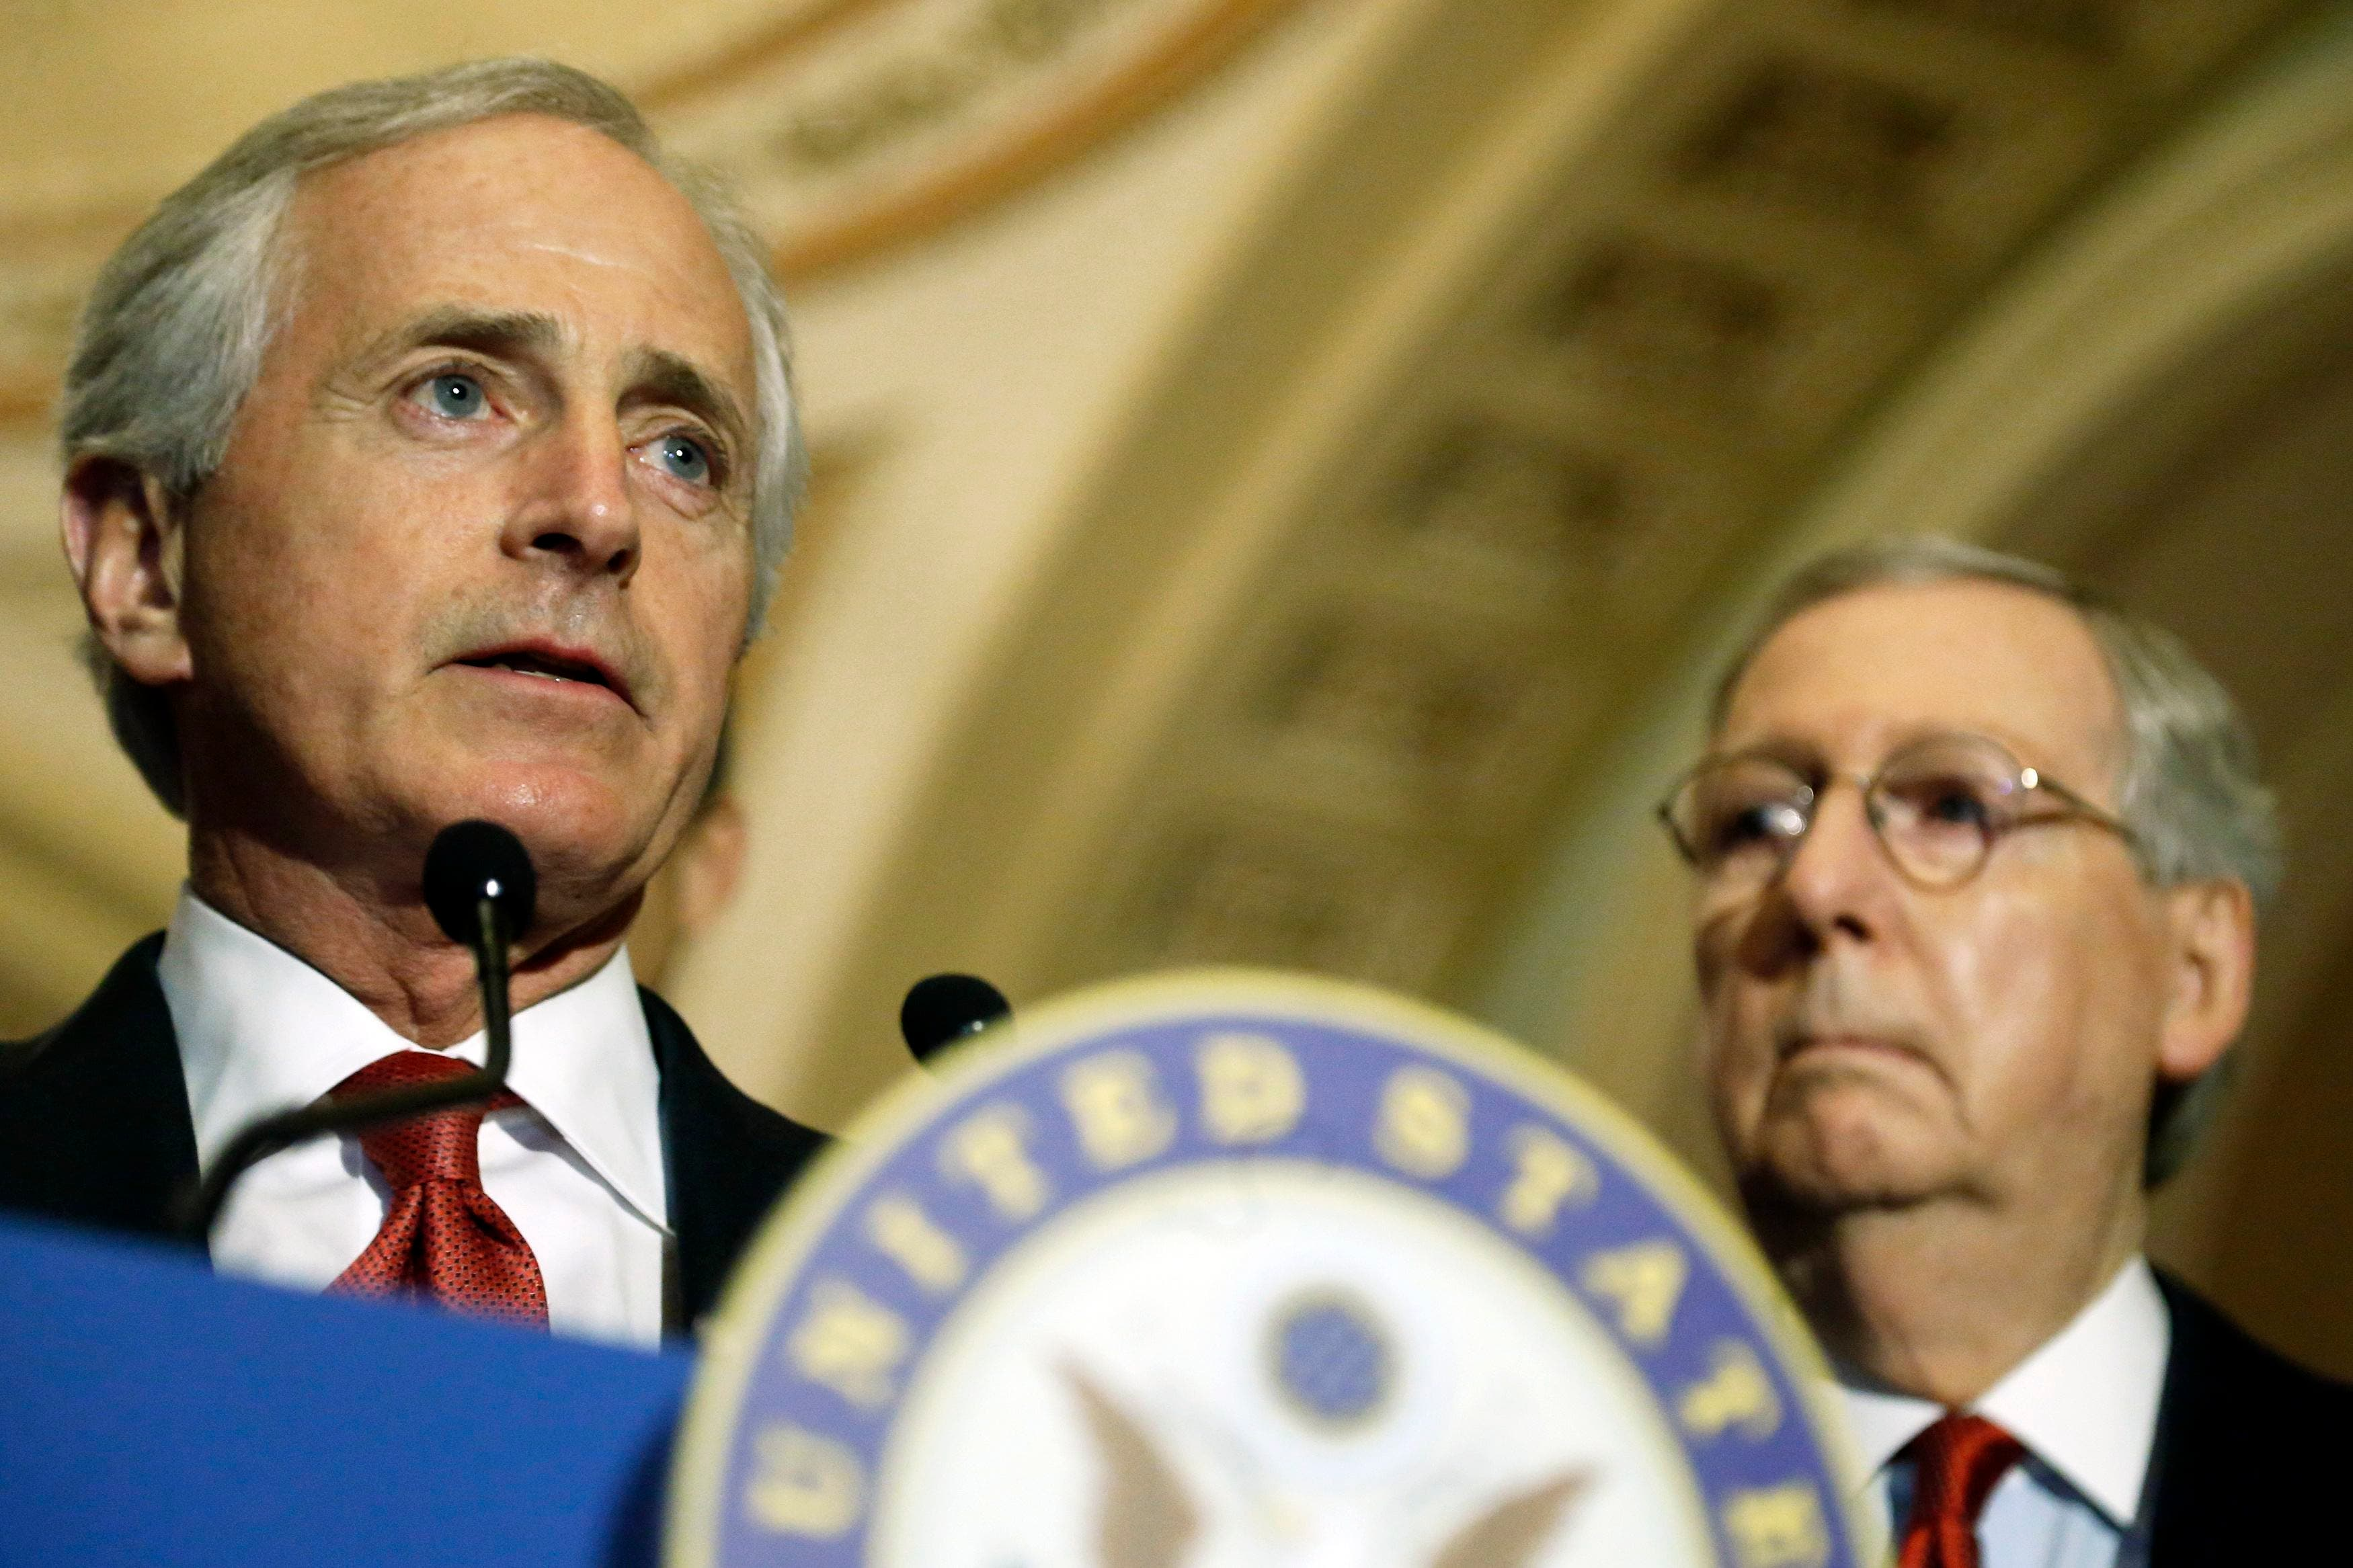 U.S. Senator Bob Corker (R-TN) (L), along with Senate Majority Leader Mitch McConnell (R-KY) (R), speaks at a news conference after the weekly Senate Republican policy luncheon at the U.S. Capitol in Washington, March 3, 2015. (Reuters)